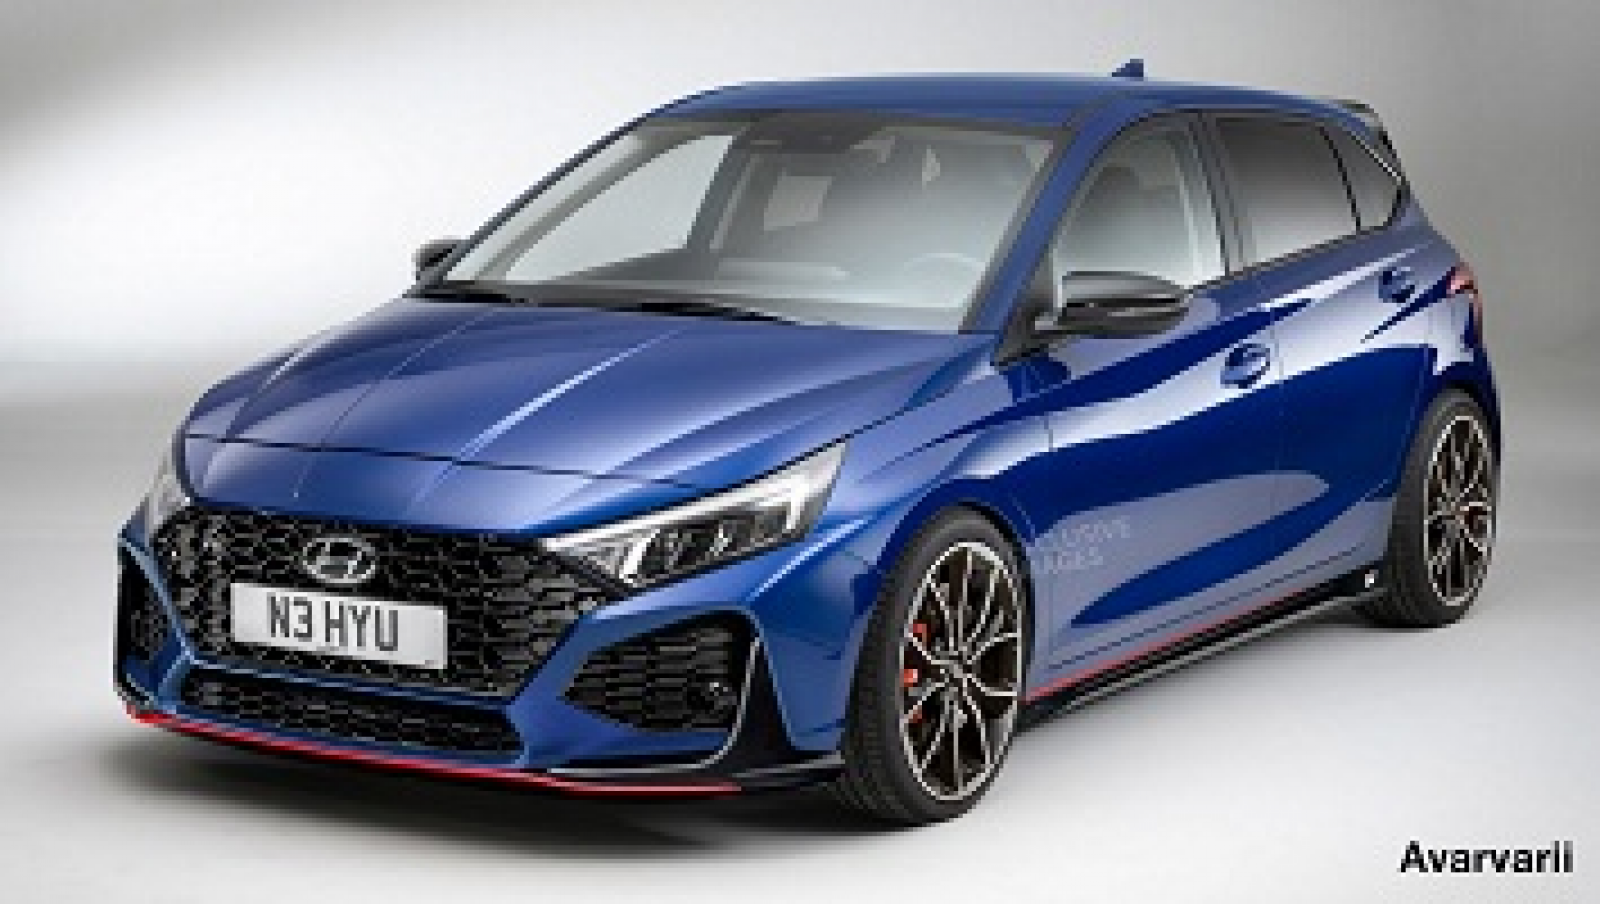 New 2021 Hyundai i20 N to rival Ford Fiesta ST with 200bhp